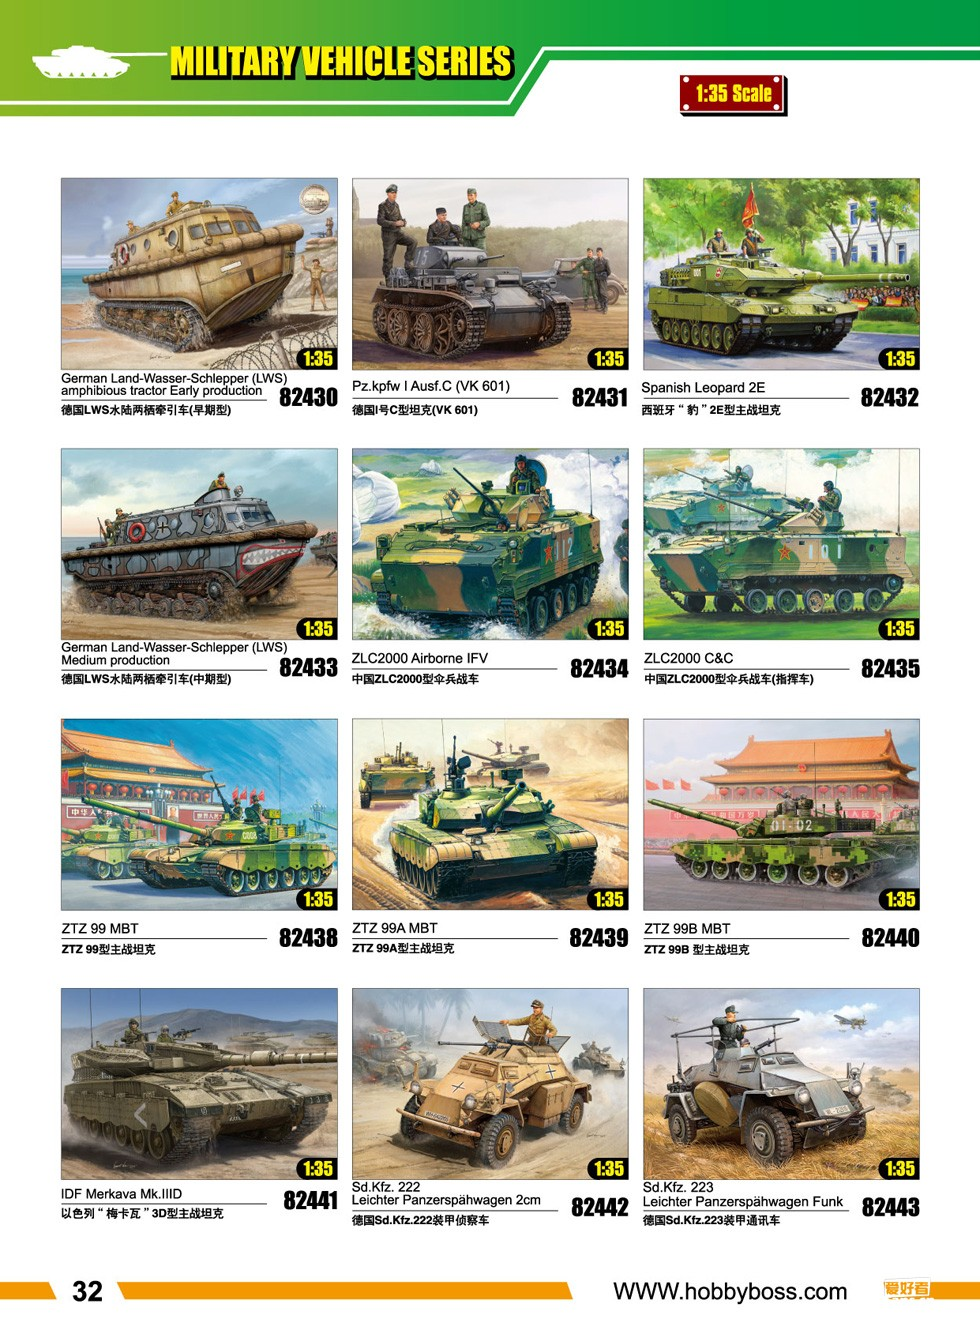 The Modelling News: Now it's the turn of Hobbyboss' new item